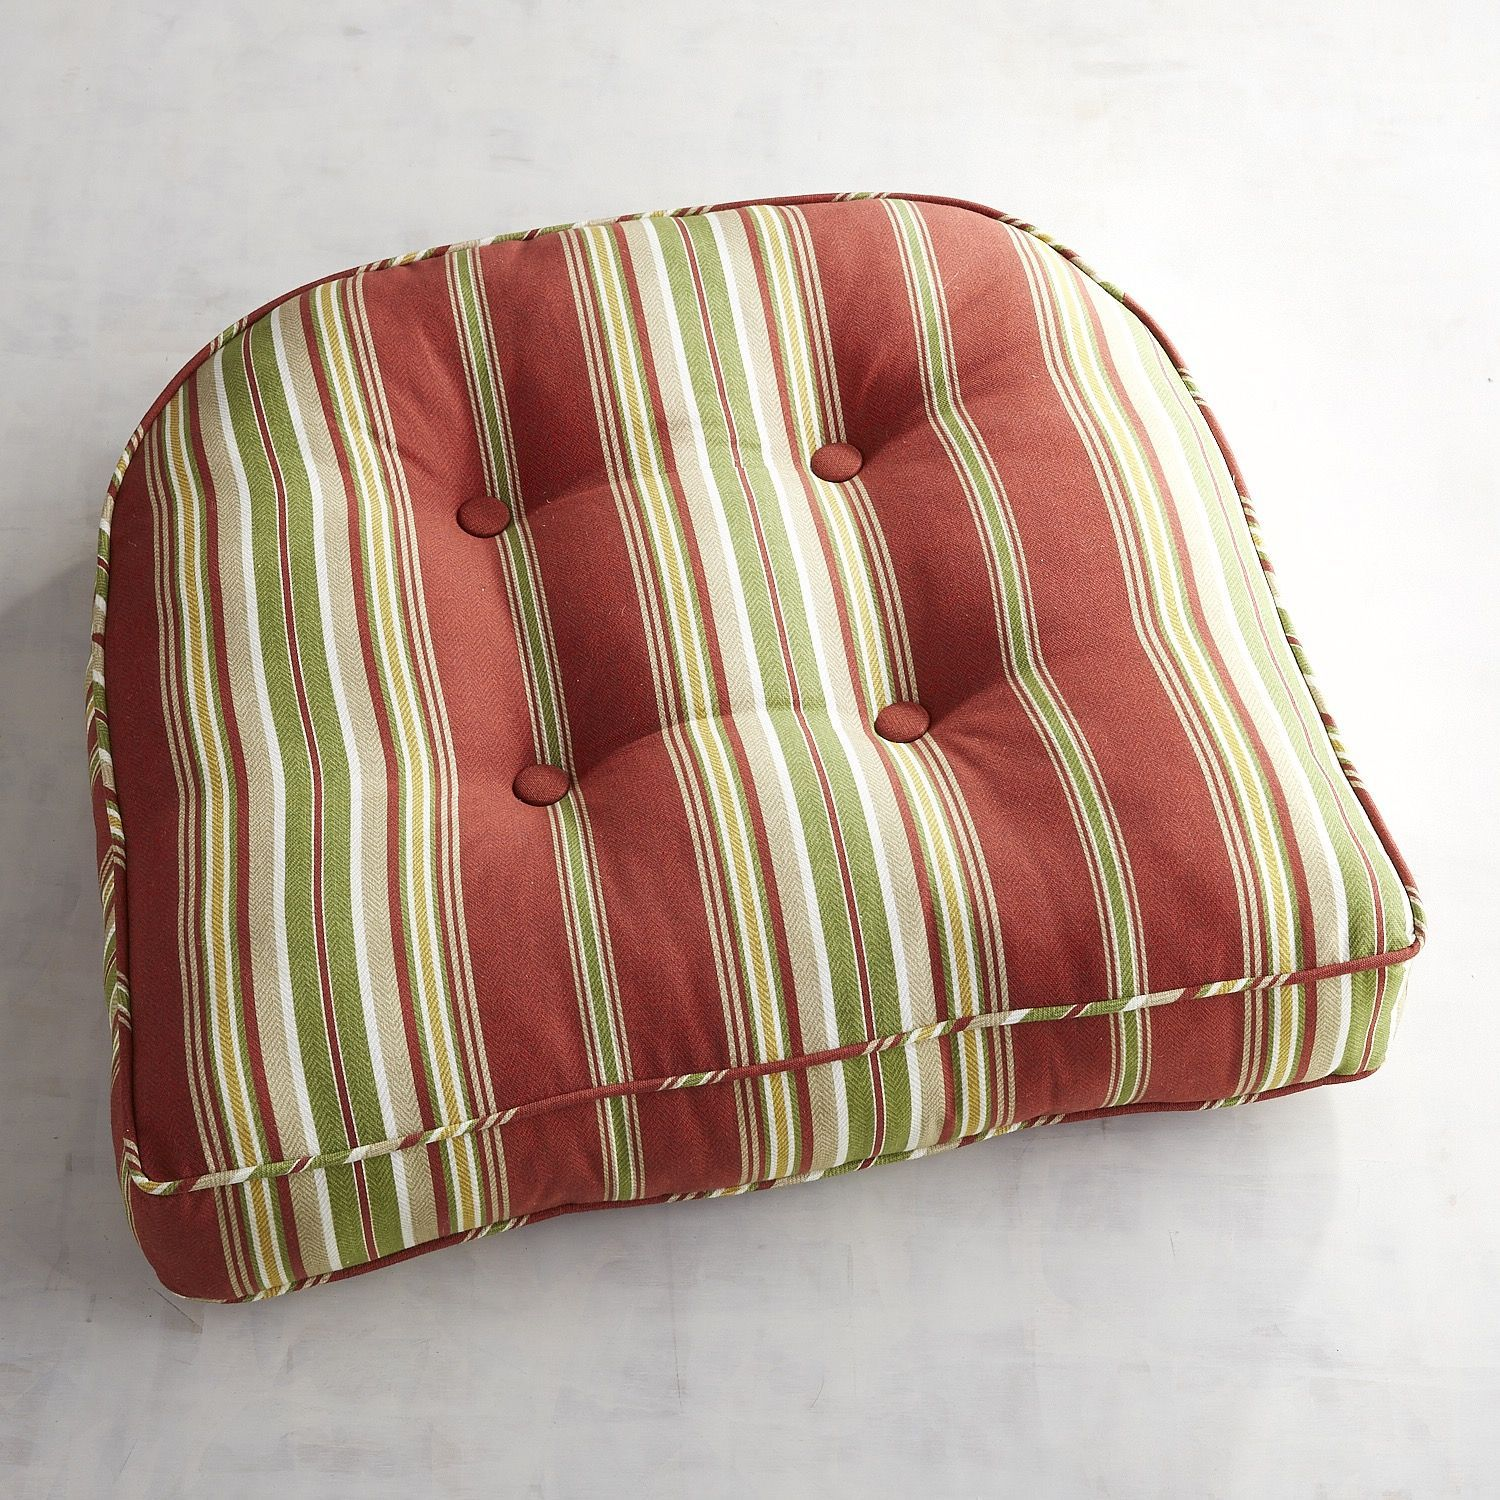 Contour Chair Cushion In Sullivan Stripe